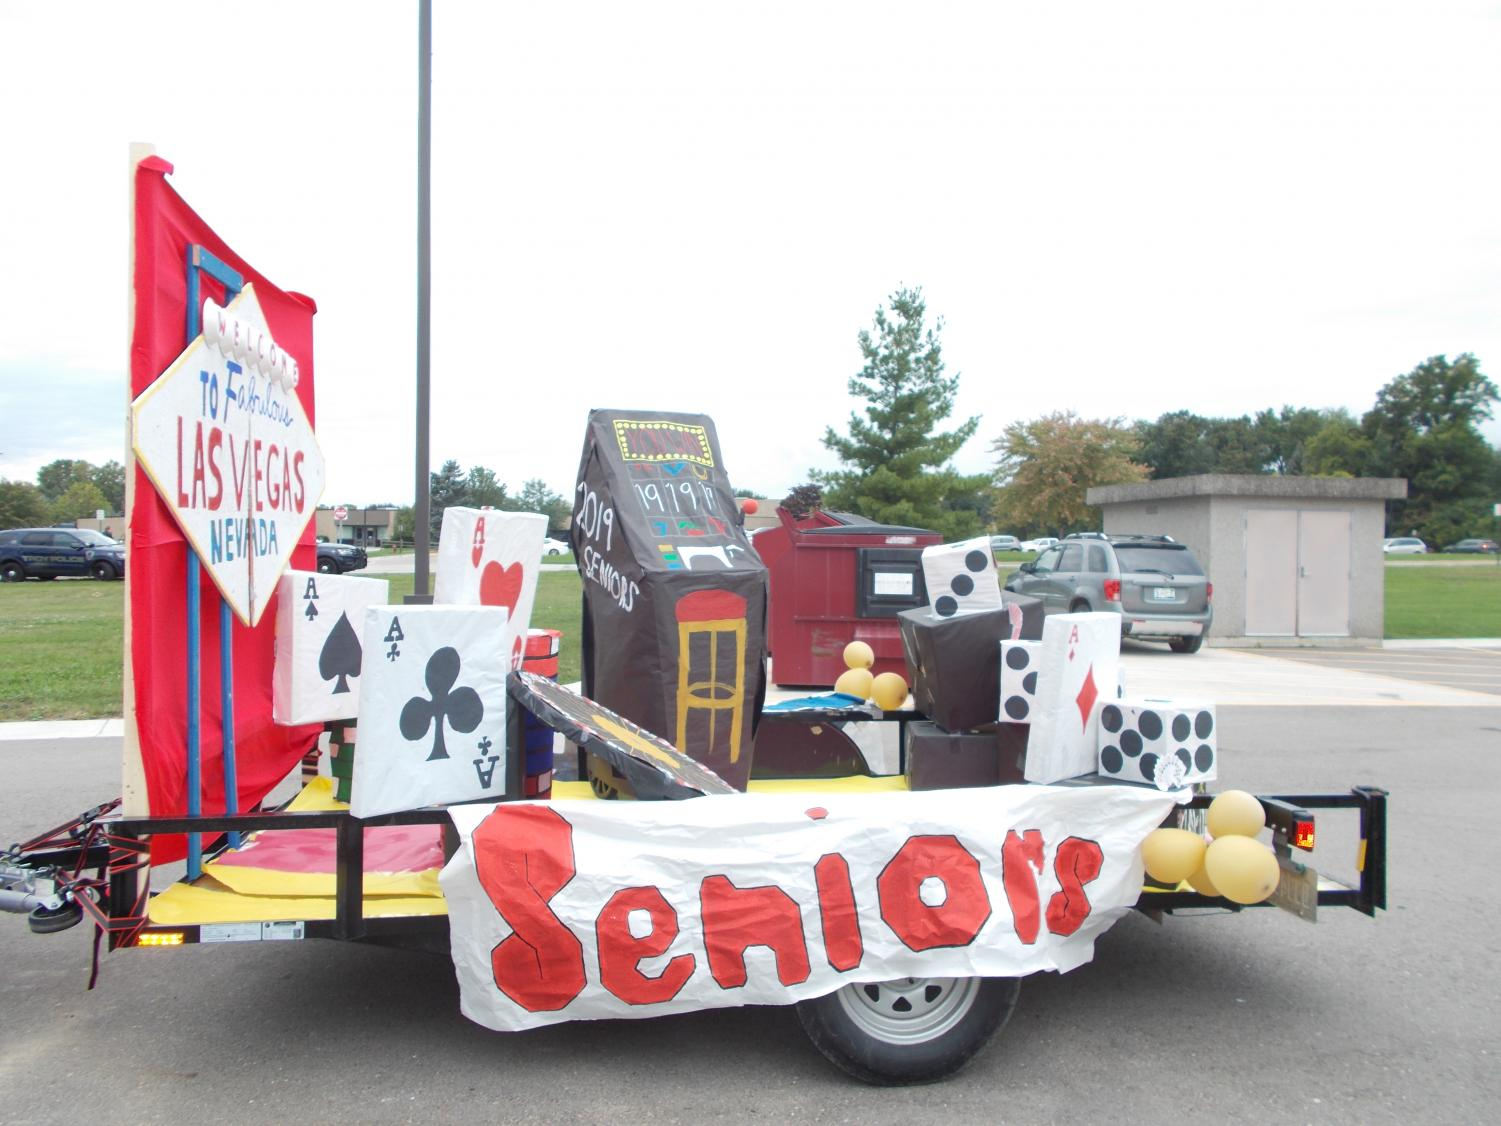 The seniors' Las Vegas-themed float features life-sized cards and gambling dice.